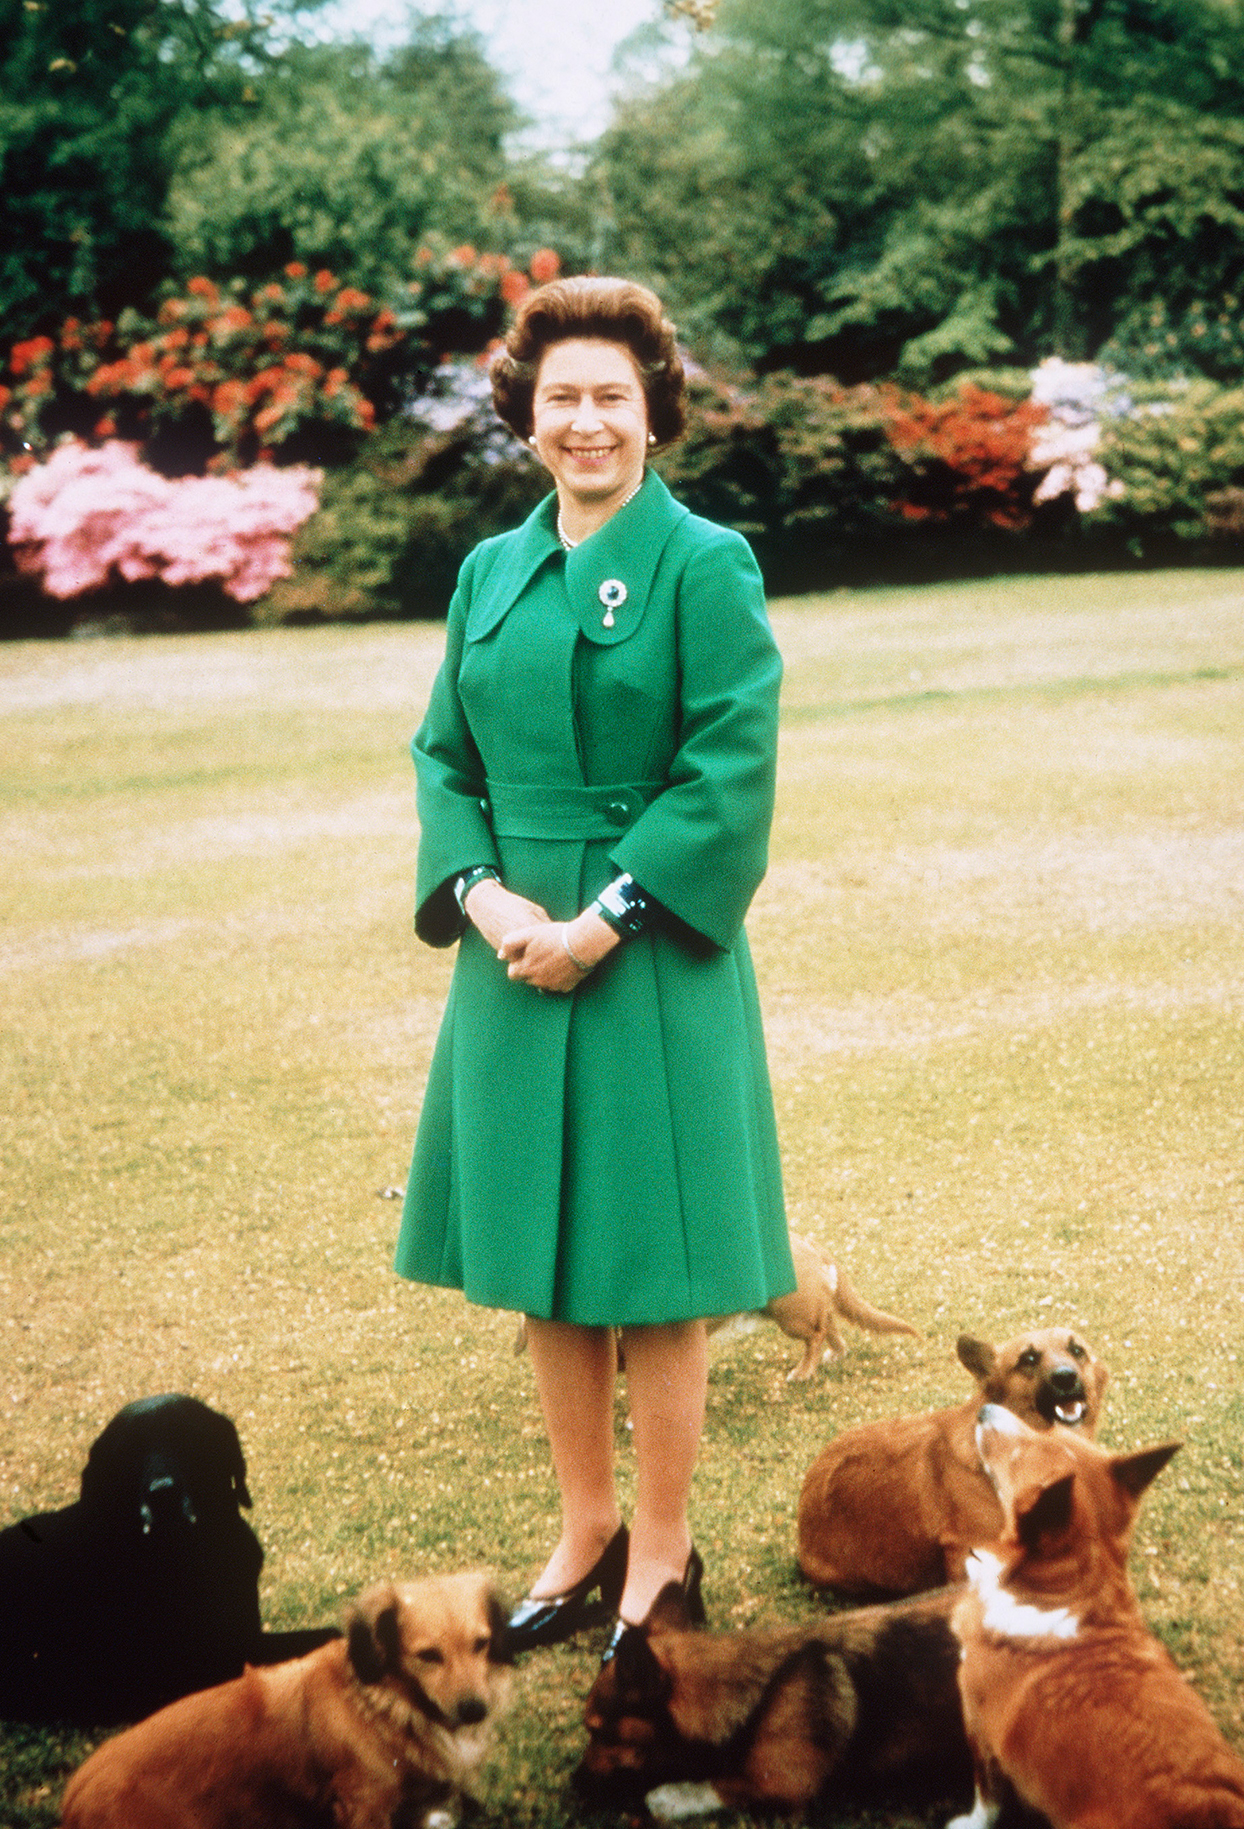 Queen Elizabeth stands in green dress on lawn surrounded by six dogs laying at her feet